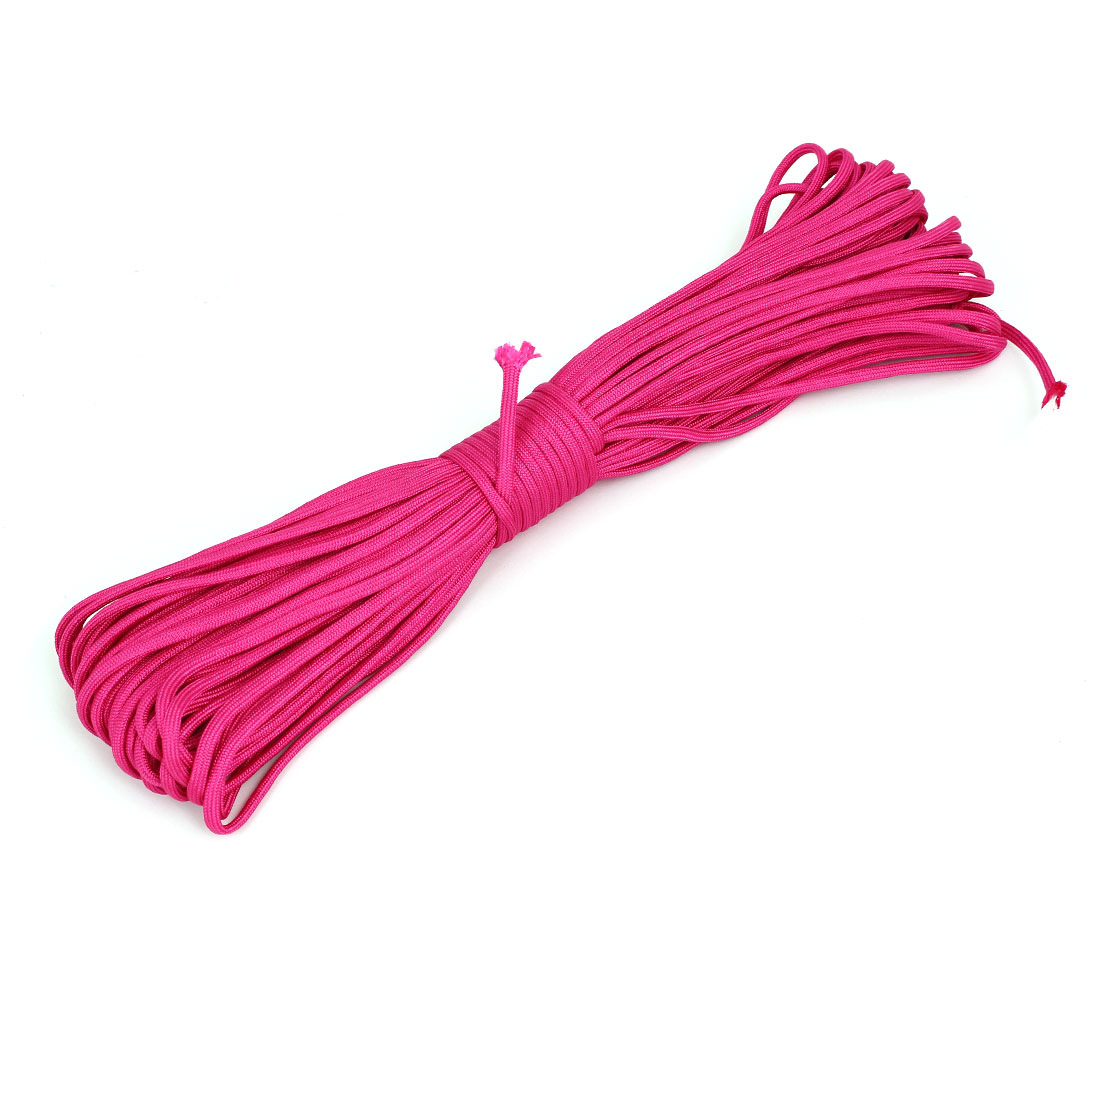 30M Length Outdoor Hiking Umbrella Tied Tent Survival Cord Safety Rope Rose Red